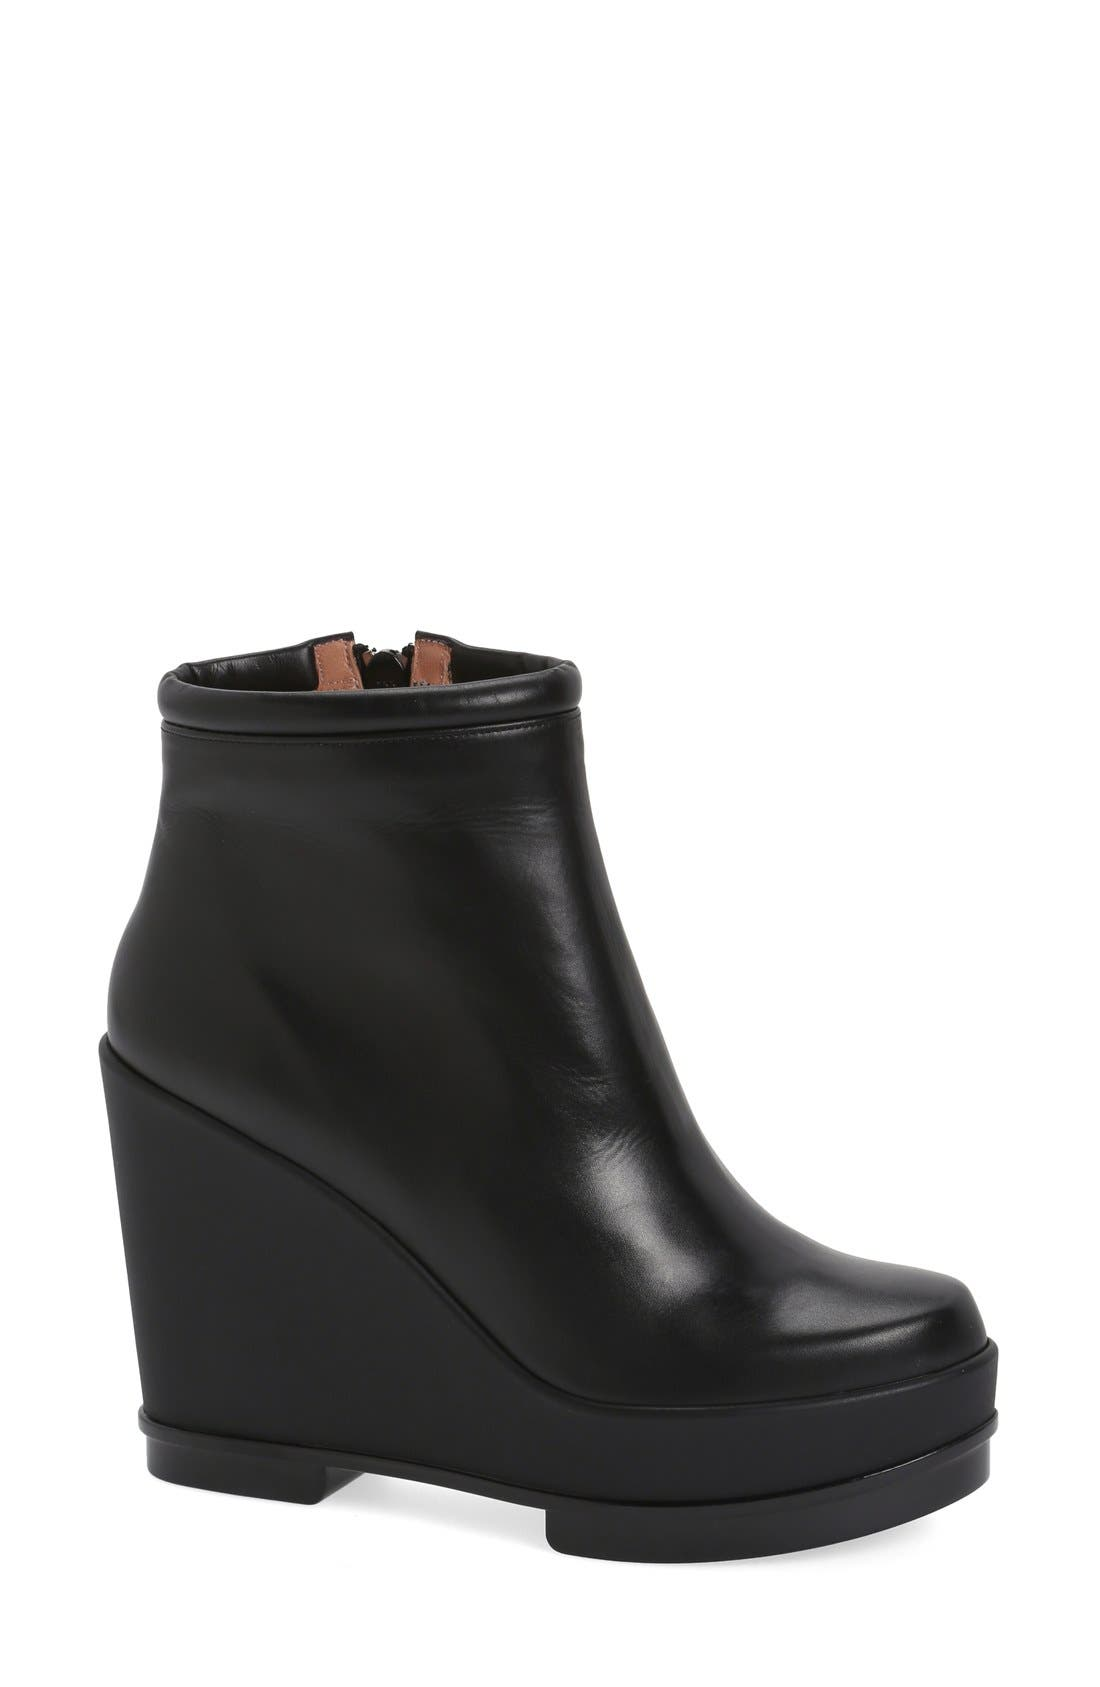 Main Image - Robert Clergerie 'Sarlah' Ankle Boot